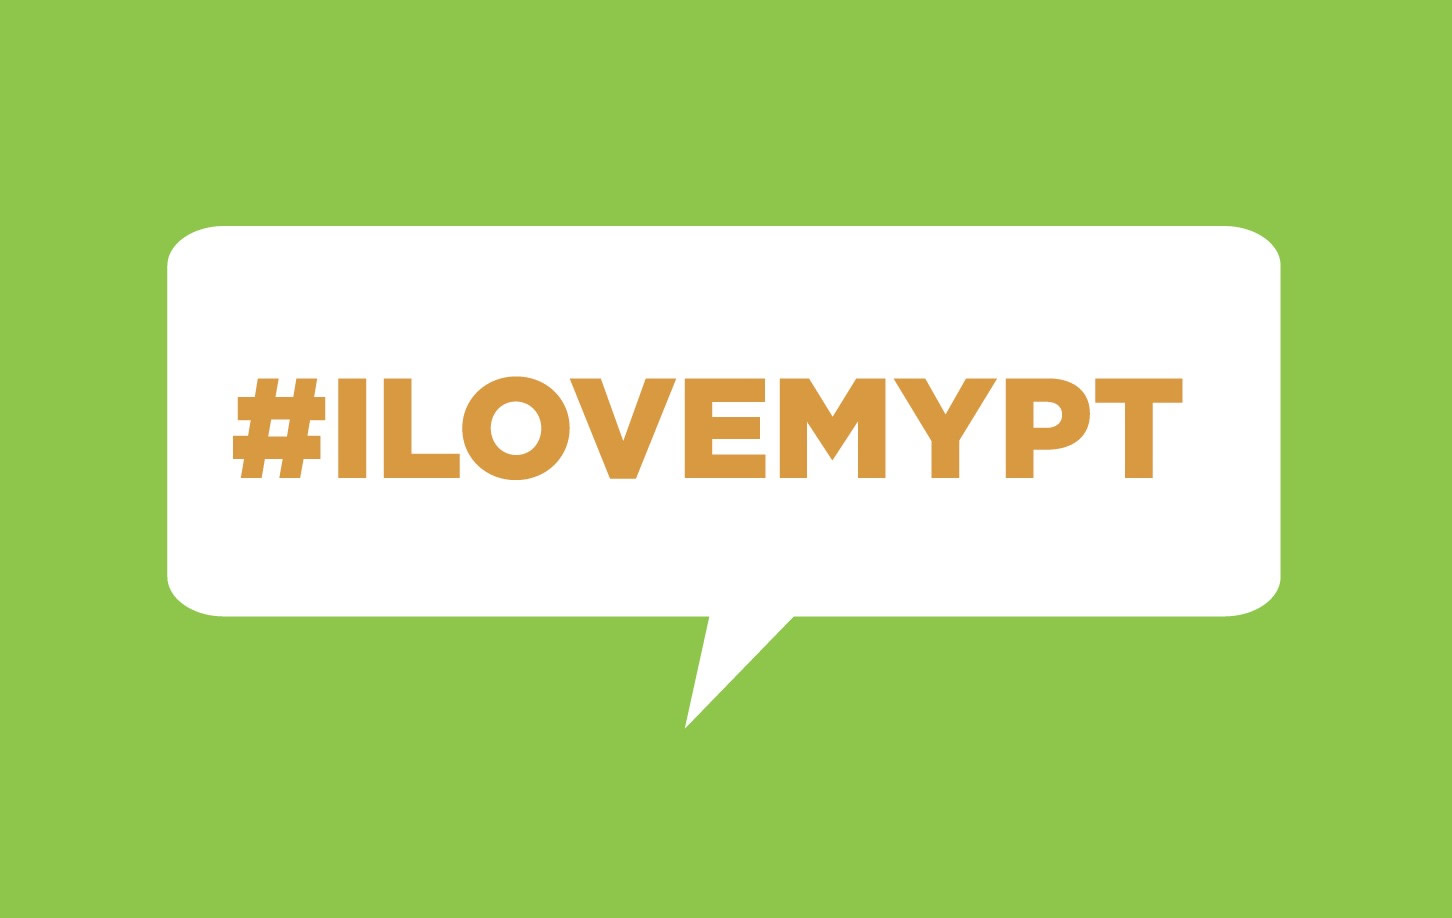 Bright idea 4 physical therapy - Print This And Give It To Your Favorite Pt In Kansas Or Share What You Love About Your Pt At Ilovemypt